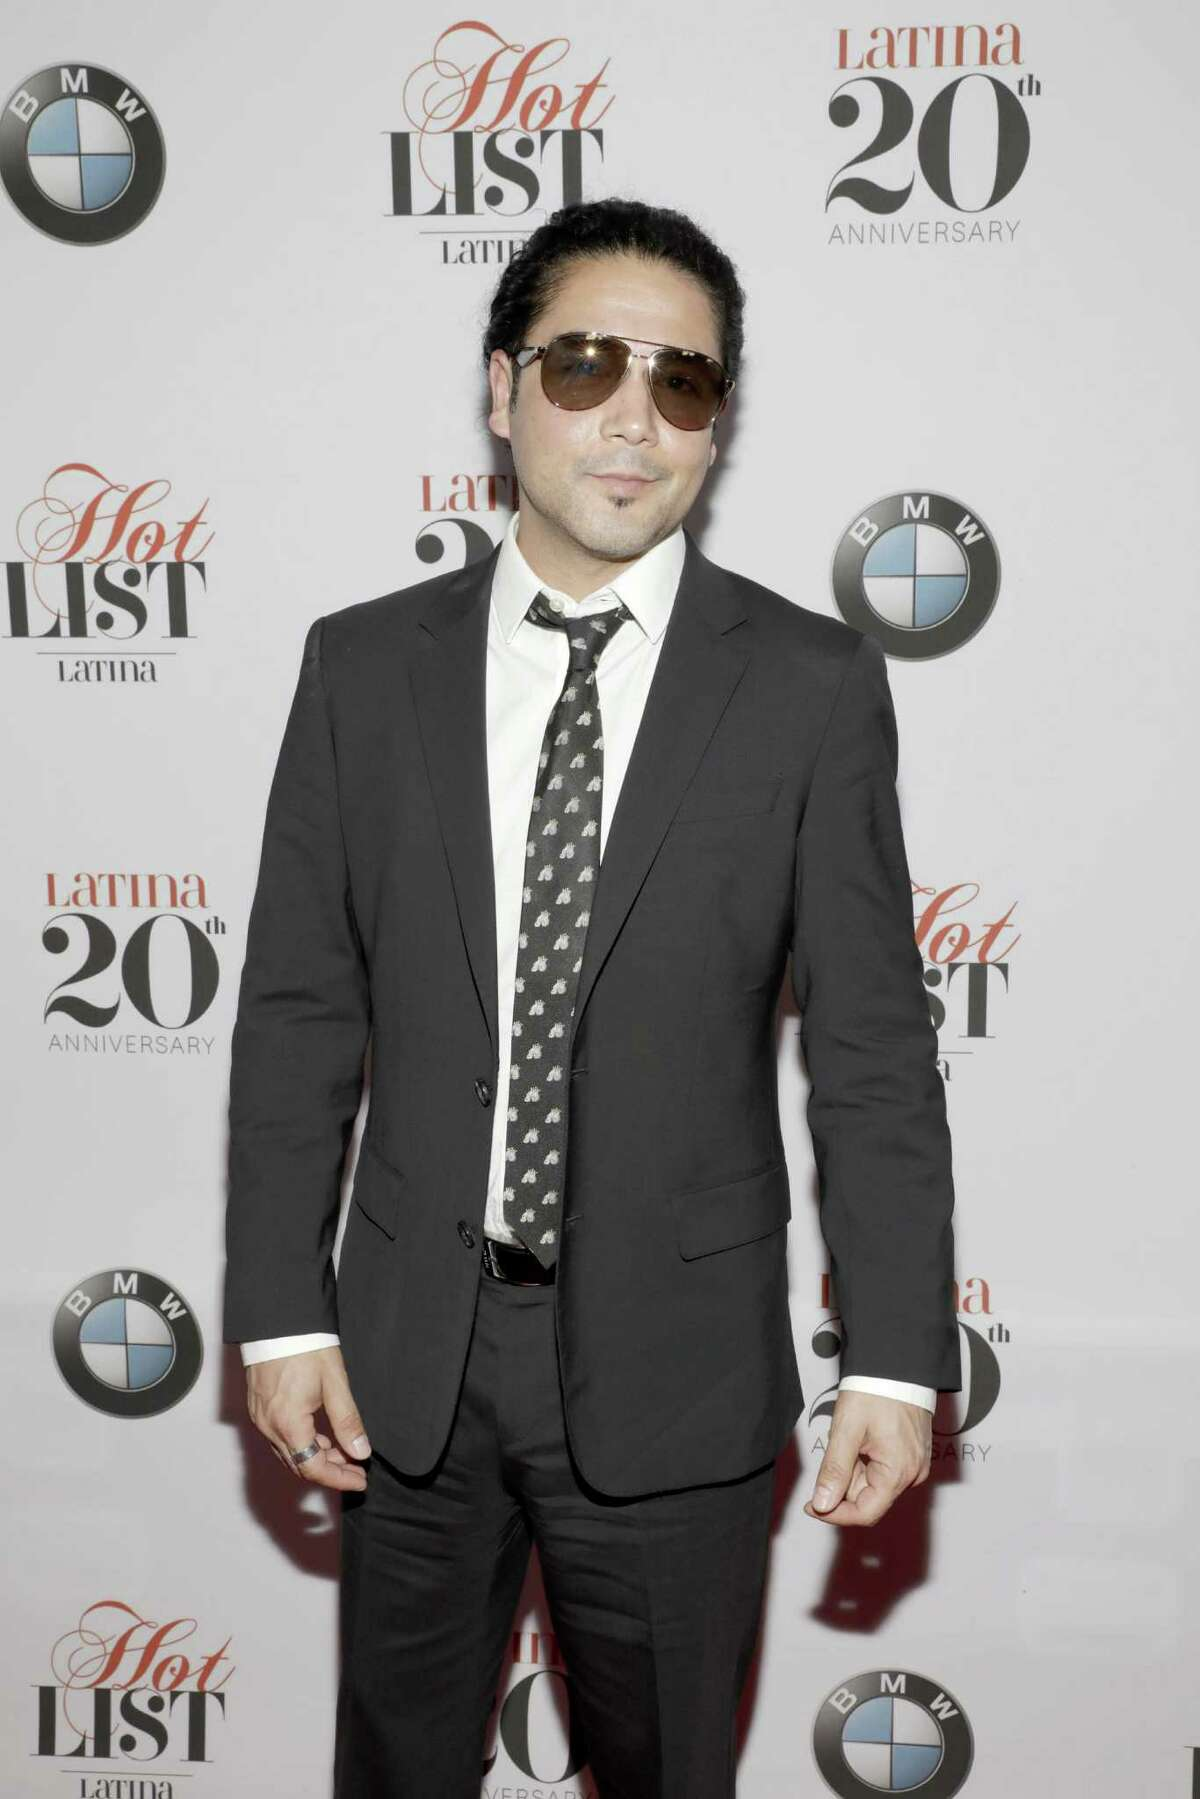 LOS ANGELES, CA - NOVEMBER 02: Musician Chris Perez attends Latina's 20th Anniversary celebrating The Hollywood Hot List Honorees at STK on November 2, 2016 in Los Angeles, California. (Photo by Rachel Murray/Getty Images for Latina Magazine)